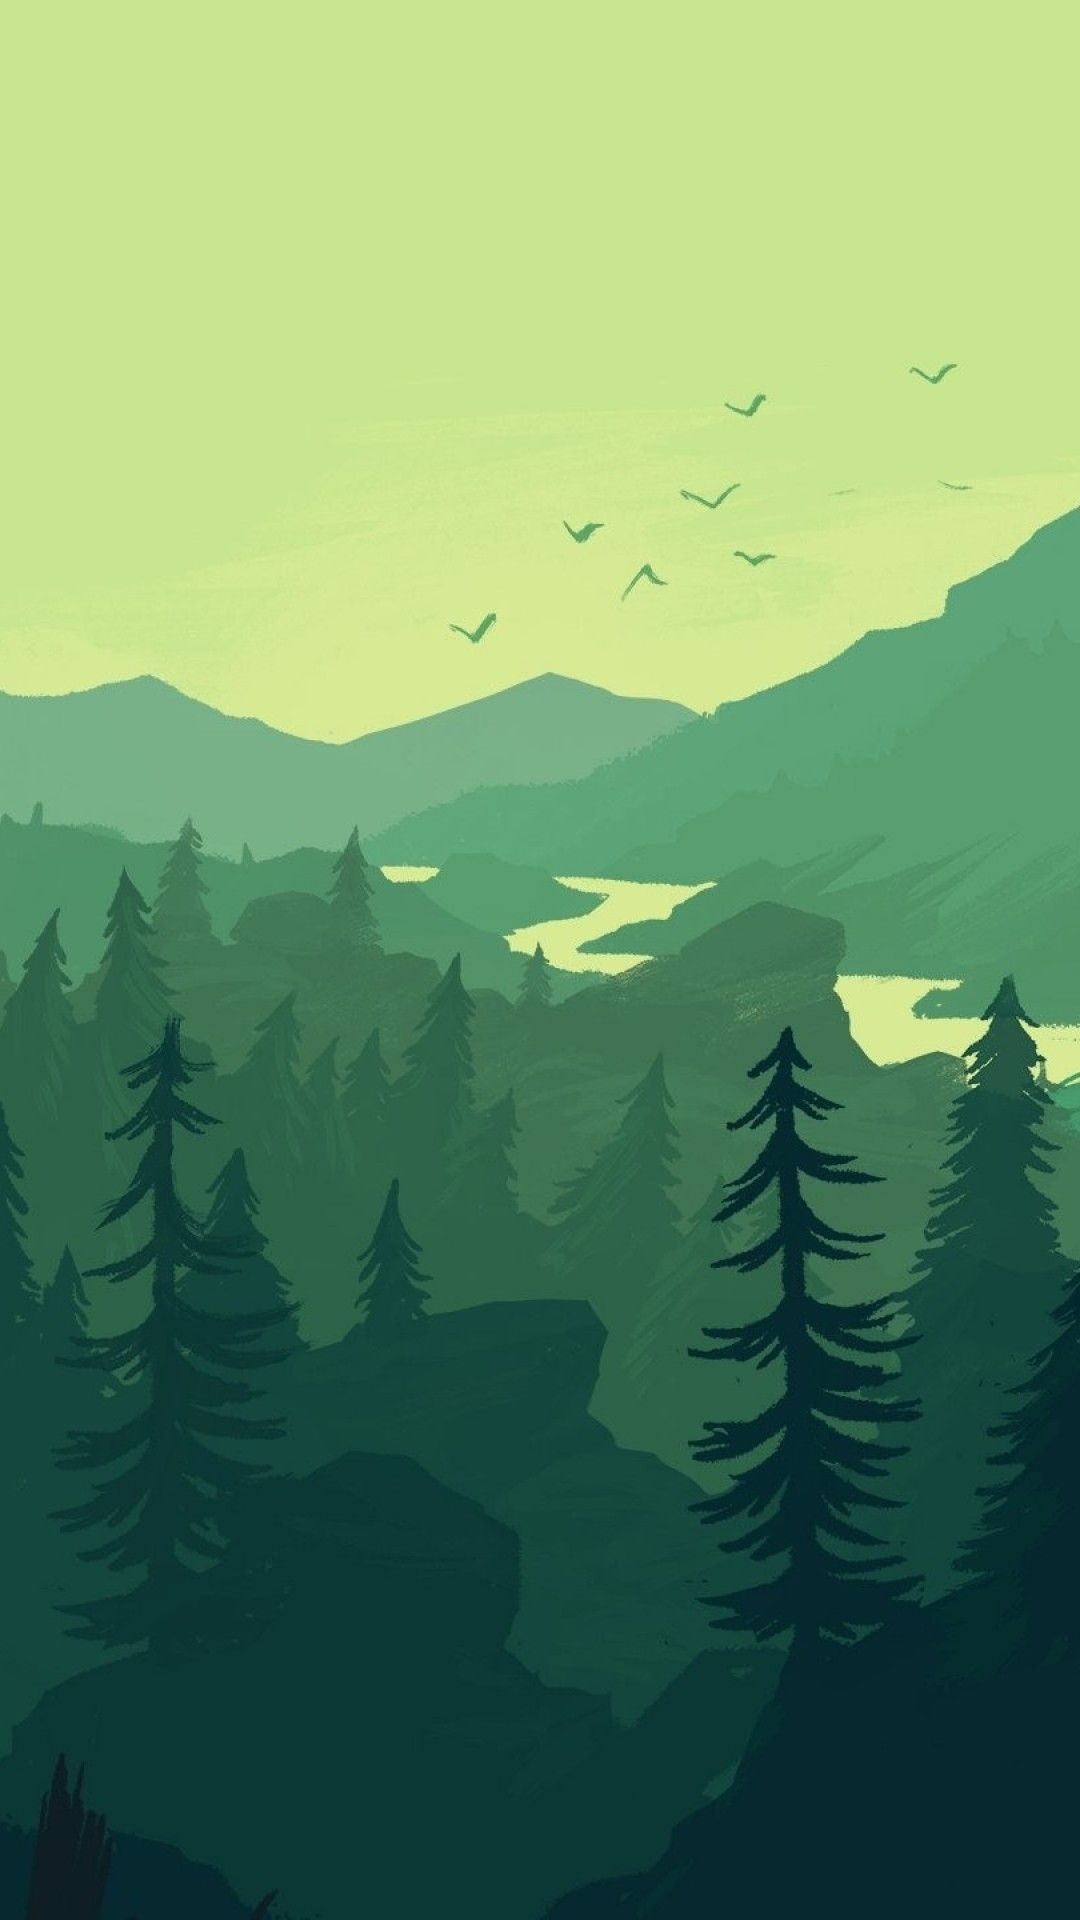 Minimalist Black And Green Picture Iphone Wallpaper Landscape Landscape Wallpaper Scenery Wallpaper